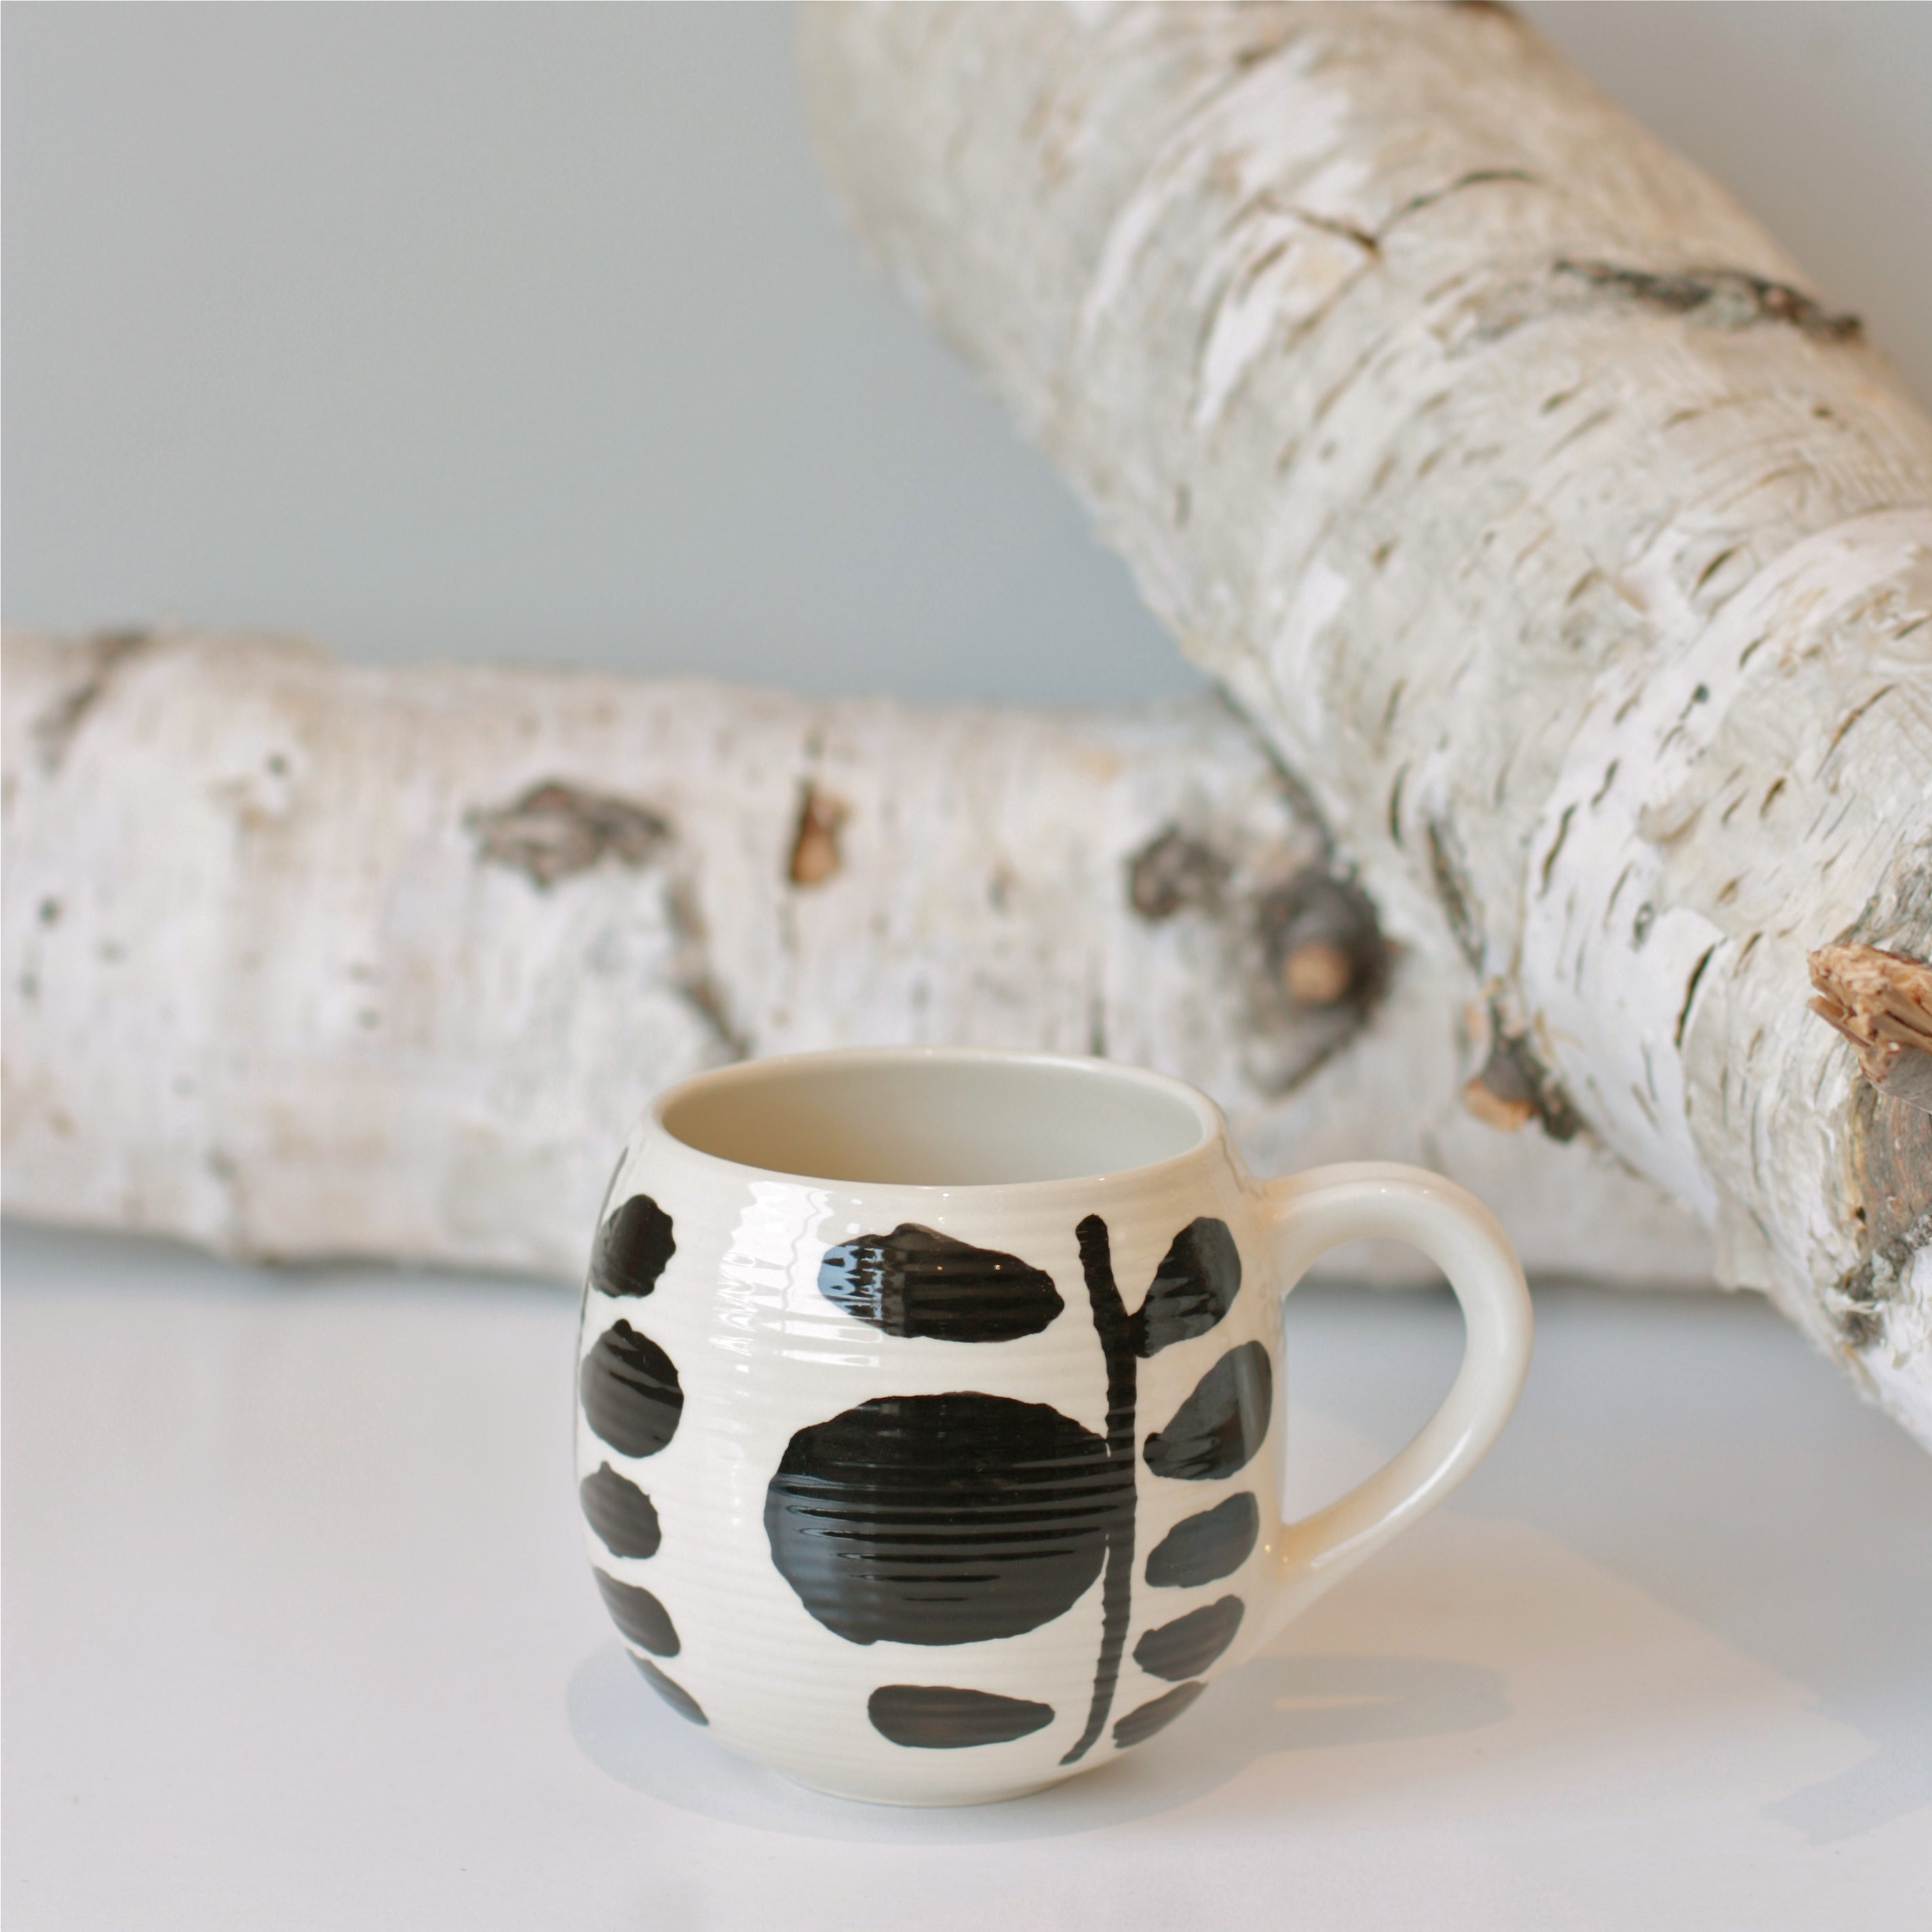 Black & White Ceramic Mug